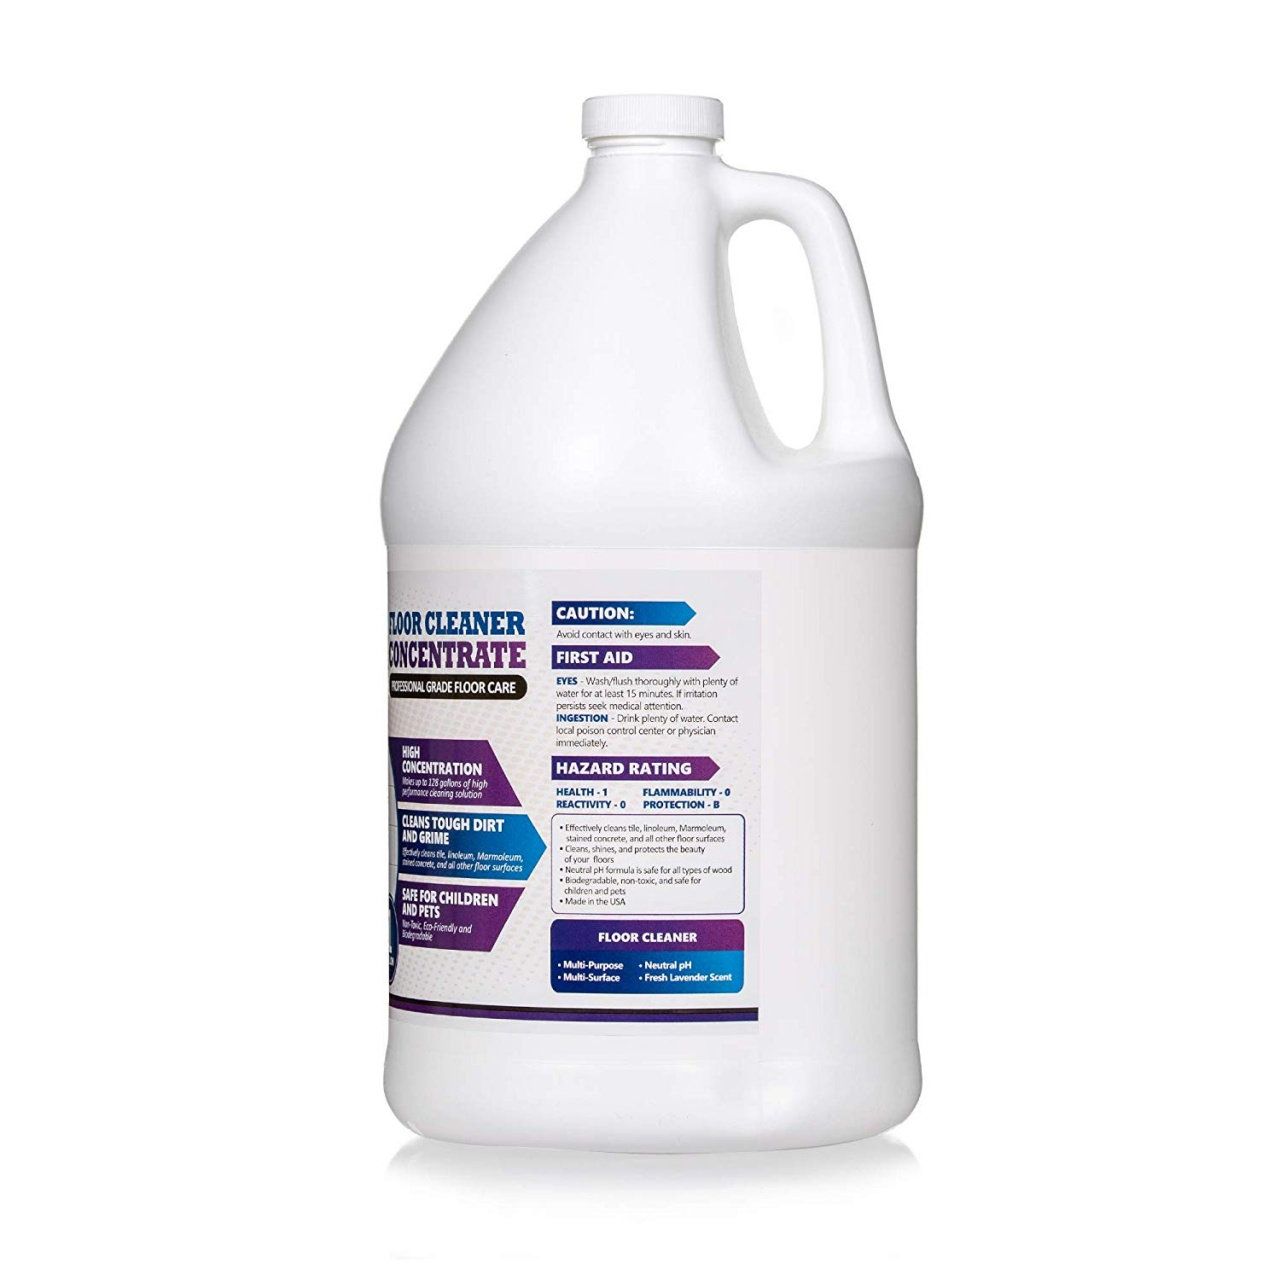 Ph Neutral Floor Cleaner For Vinyl Carpet Vidalondon